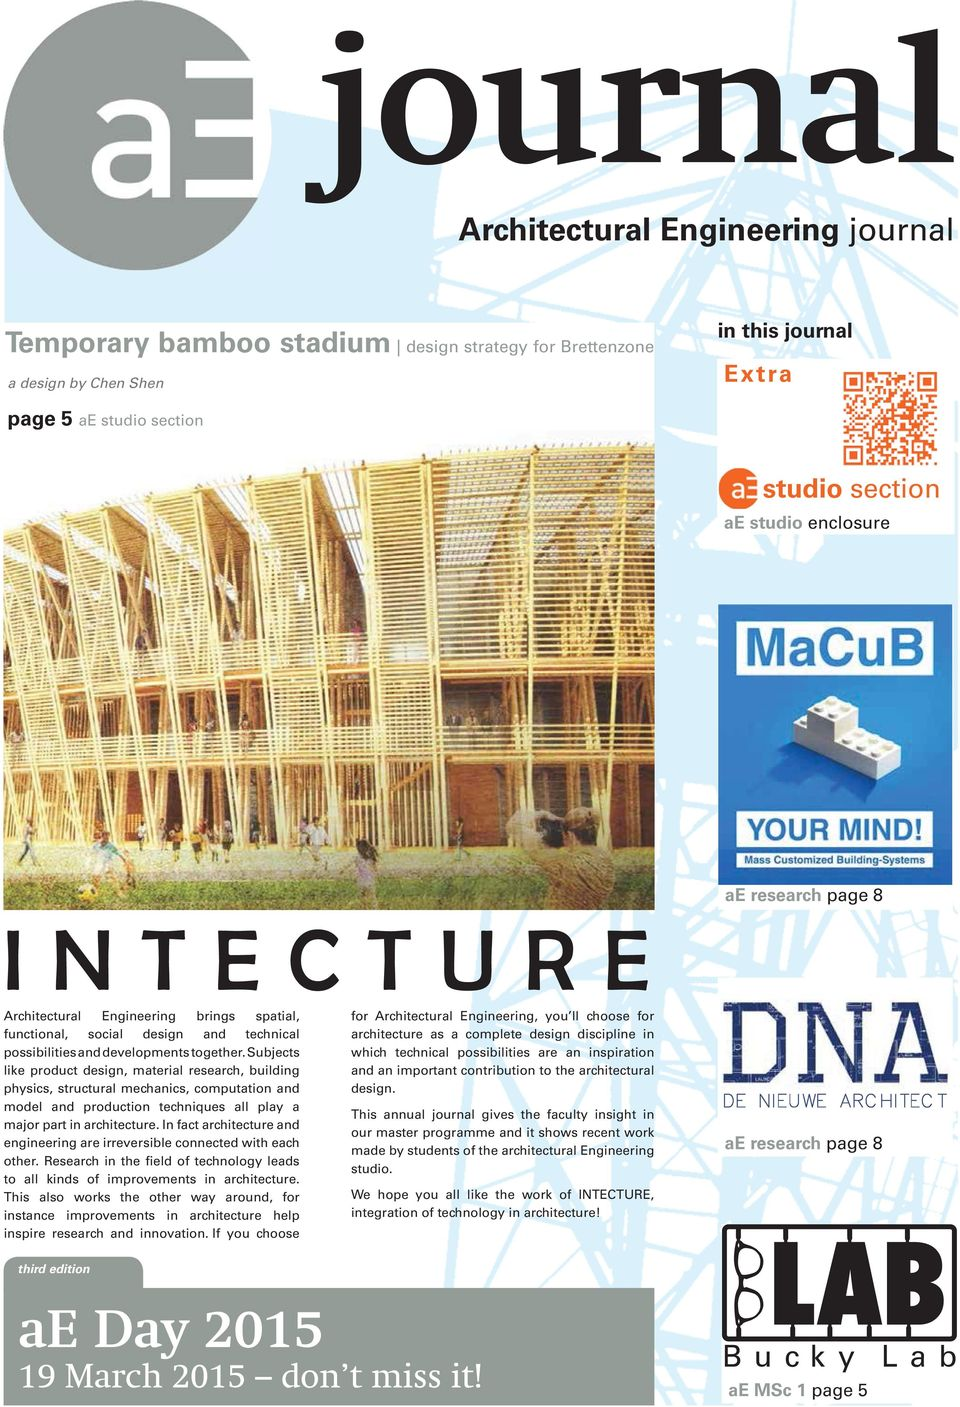 Subjects like product design, material research, building physics, structural mechanics, computation and model and production techniques all play a major part in architecture.